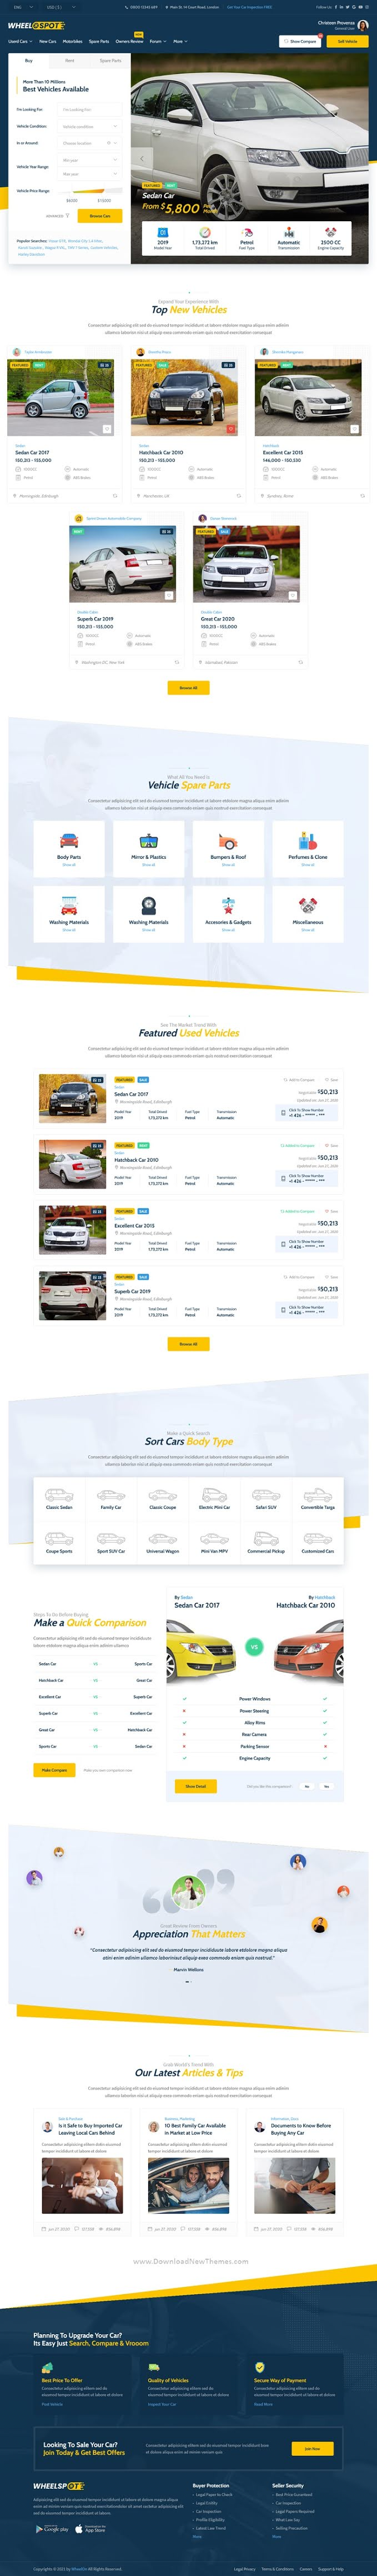 Vehicle Listing Template